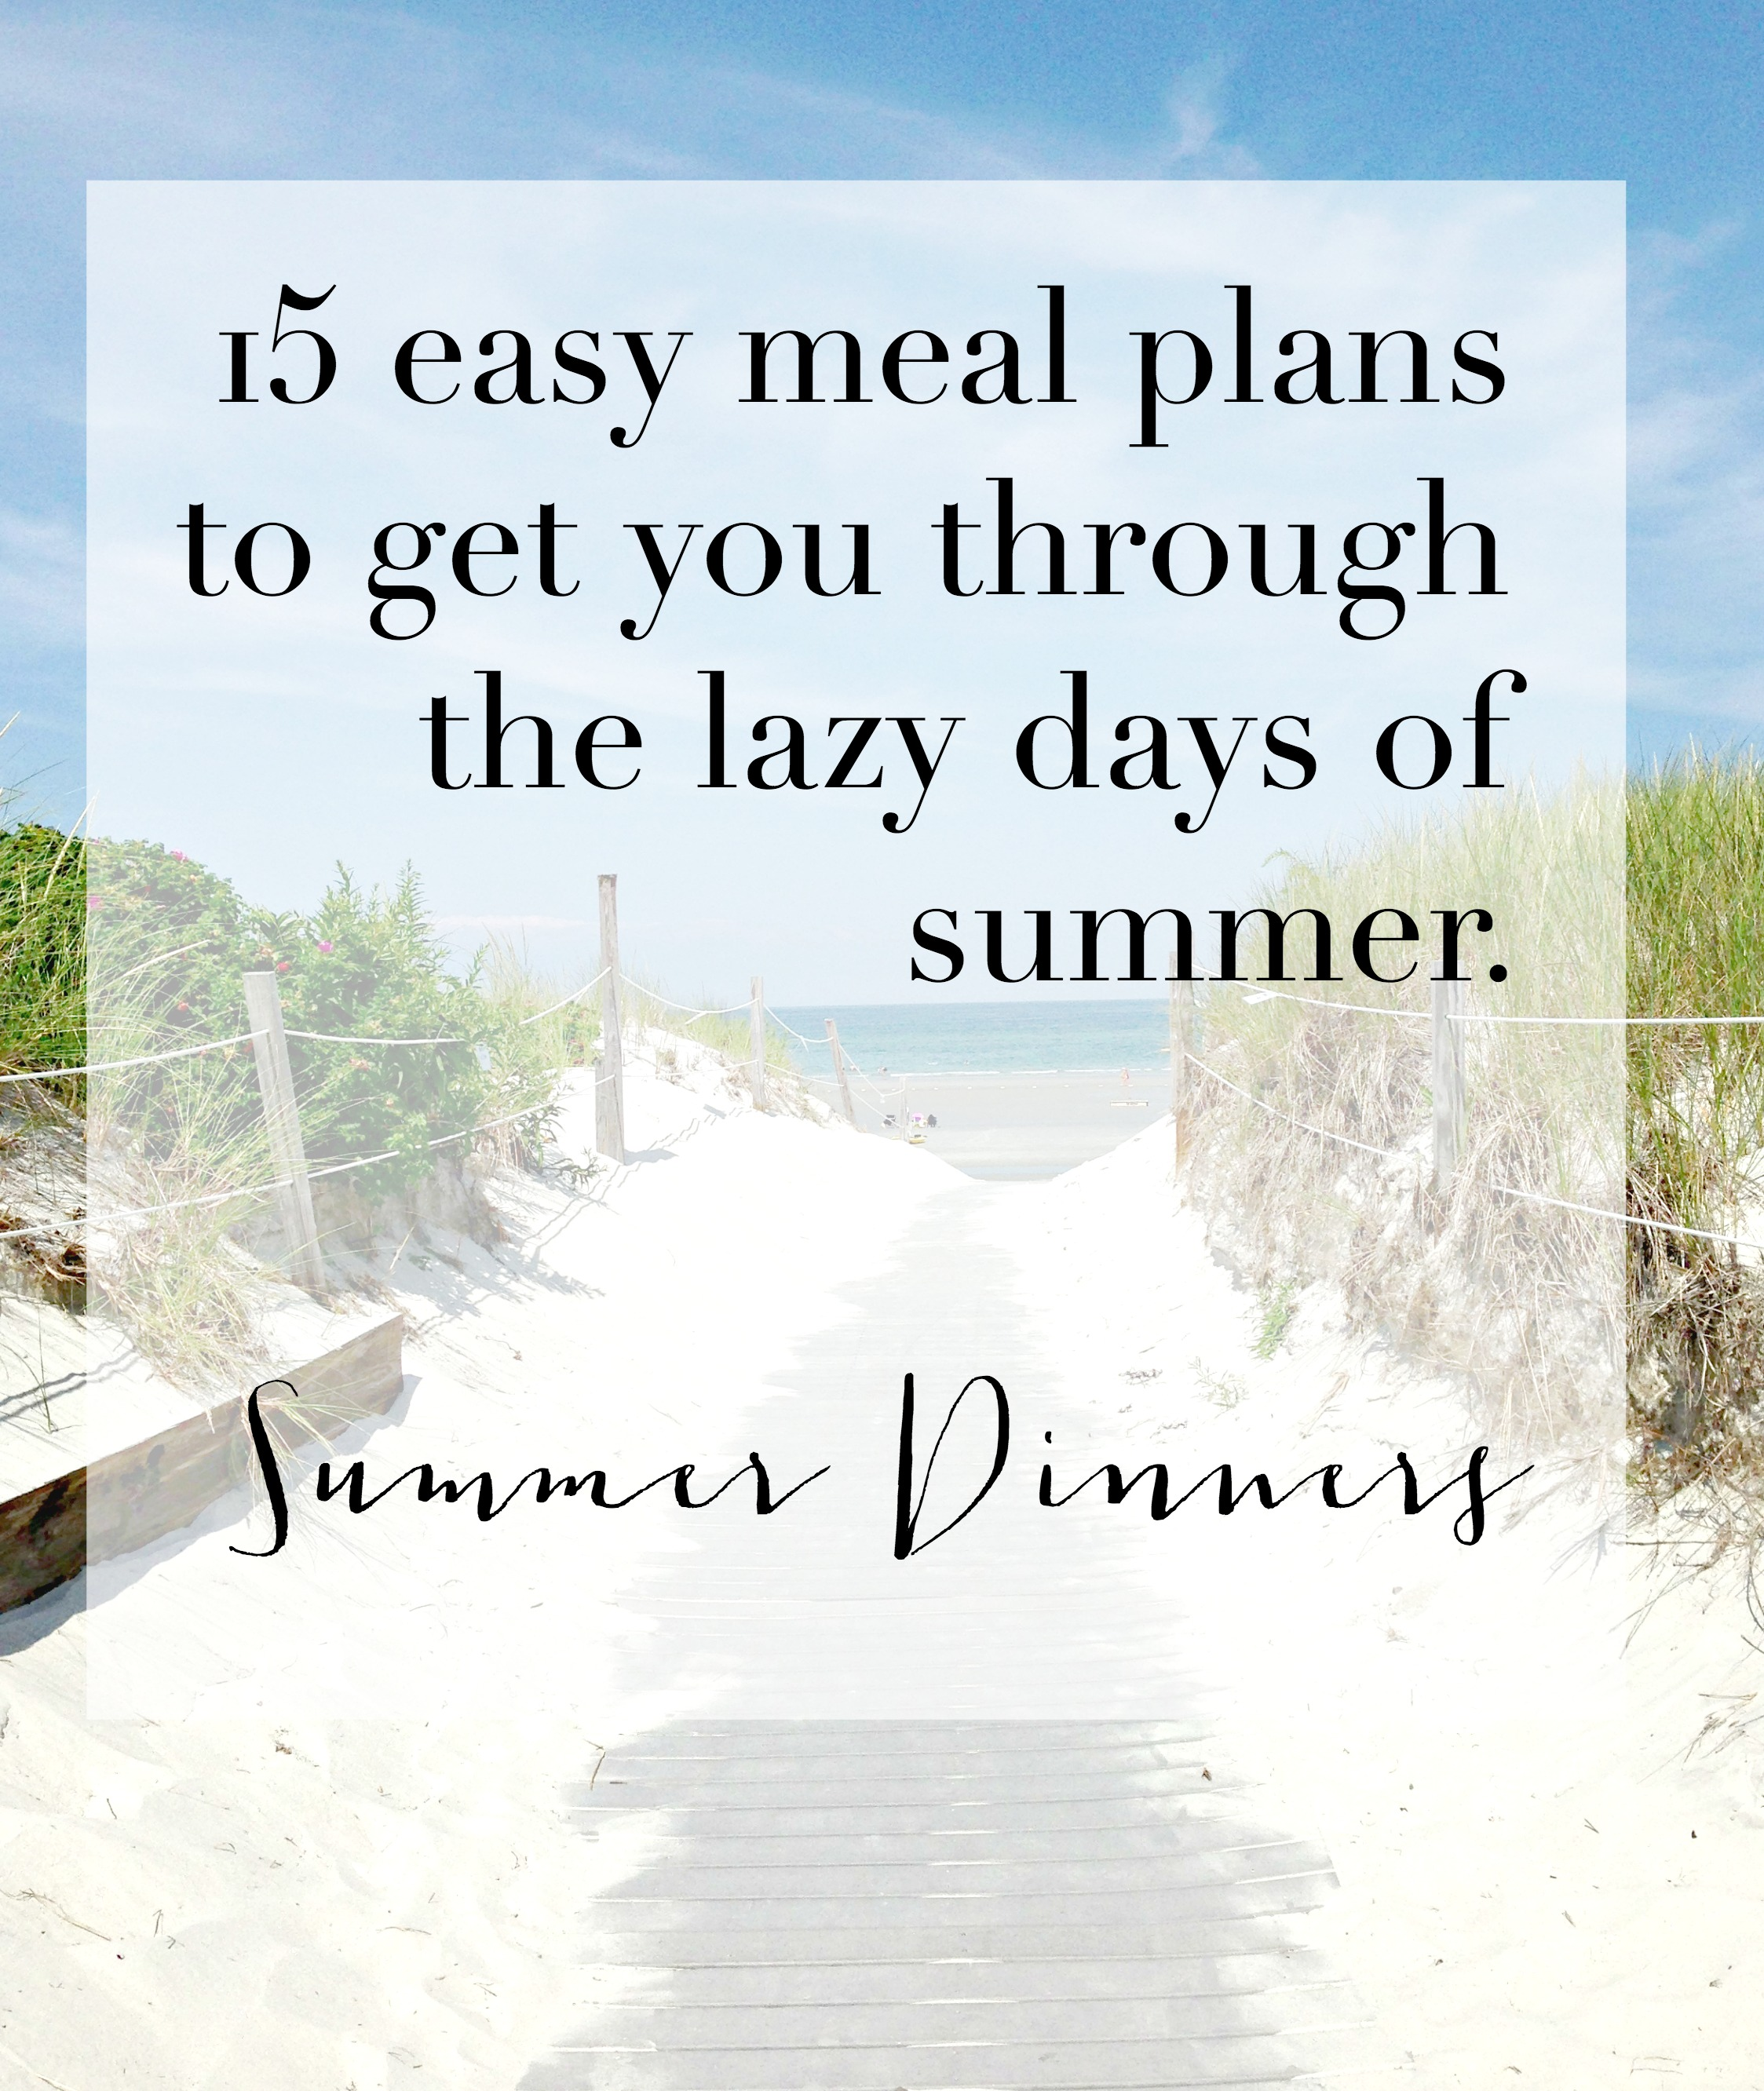 15 Easy summer dinner ideas when you don't have time in the kitchen. Grab the cheat sheet and save this for Summer Meal Planning Ideas.